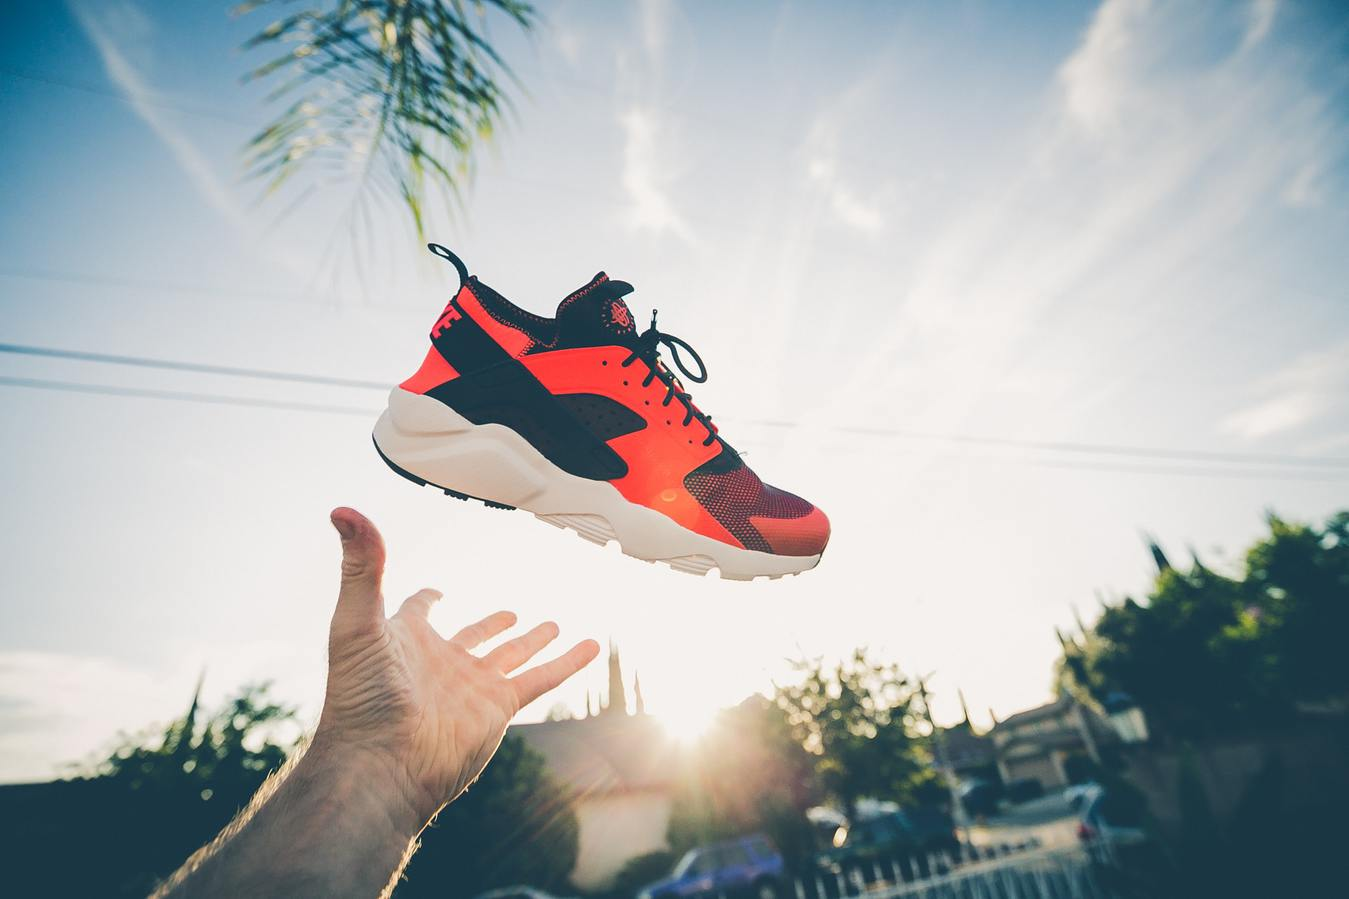 Red Sneaker in Air Thrown